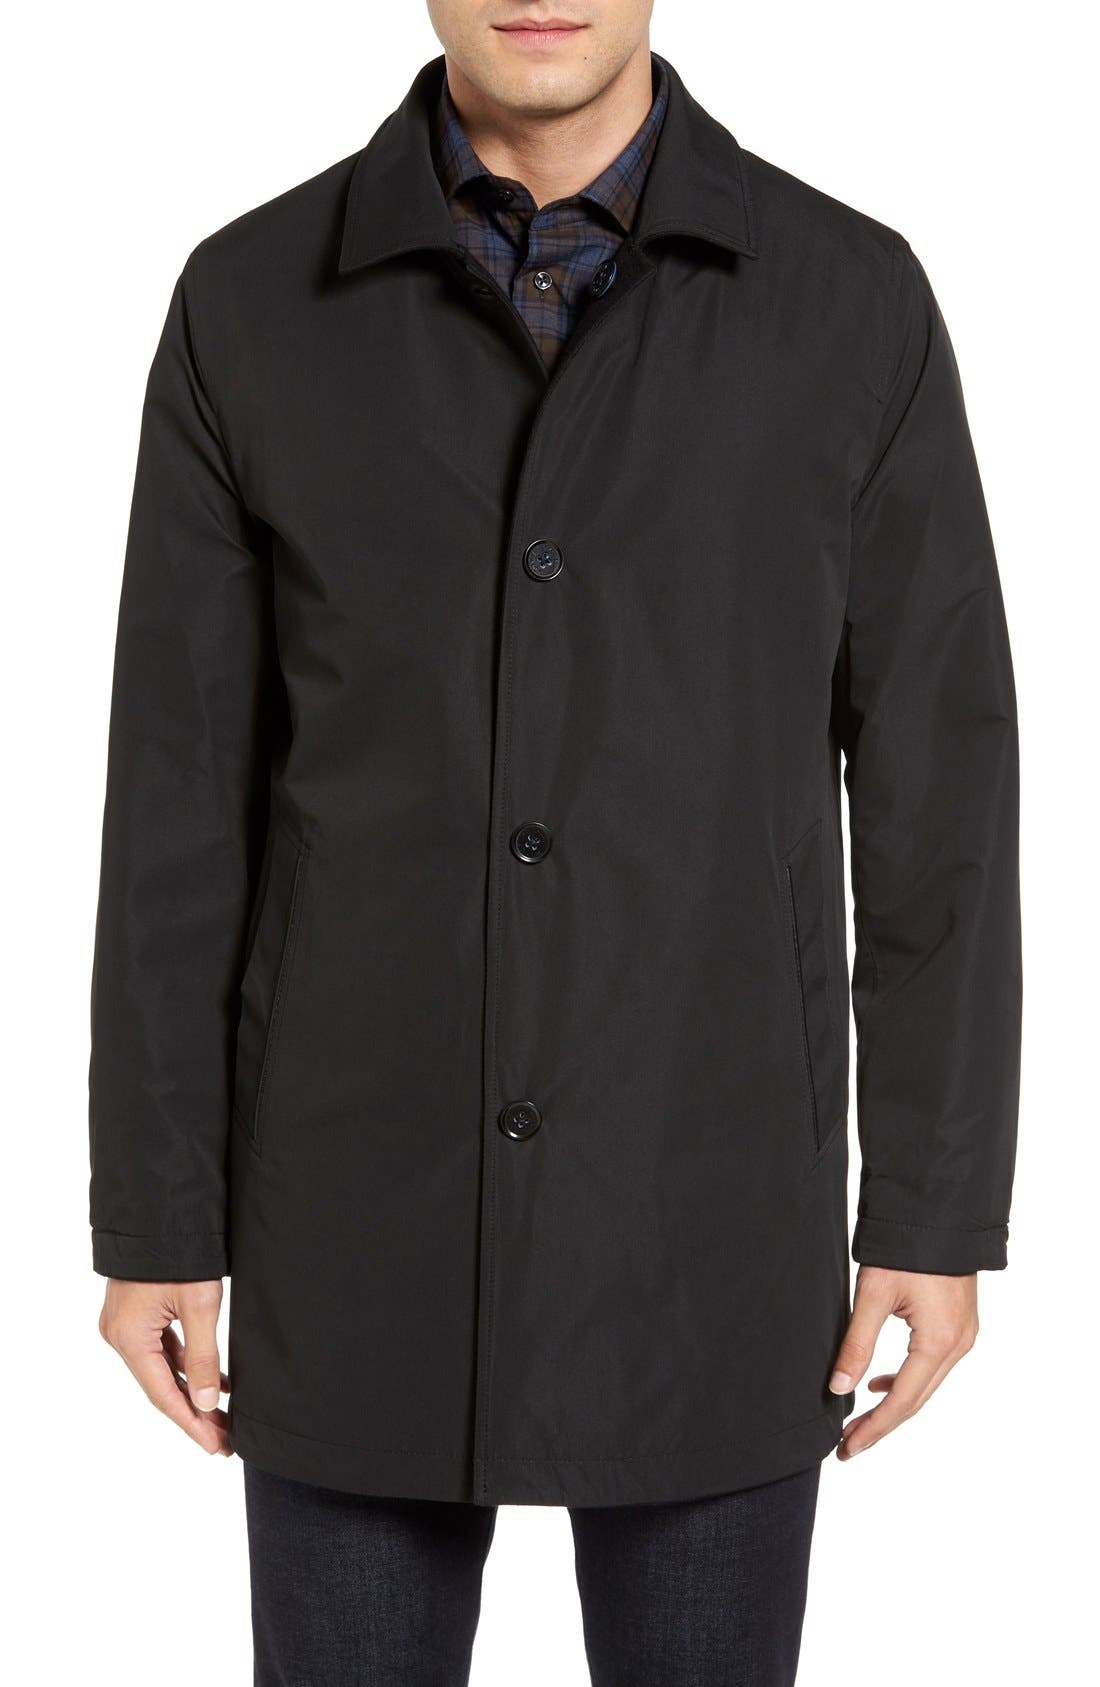 Cole Haan Reversible Wool Blend Overcoat,                             Alternate thumbnail 4, color,